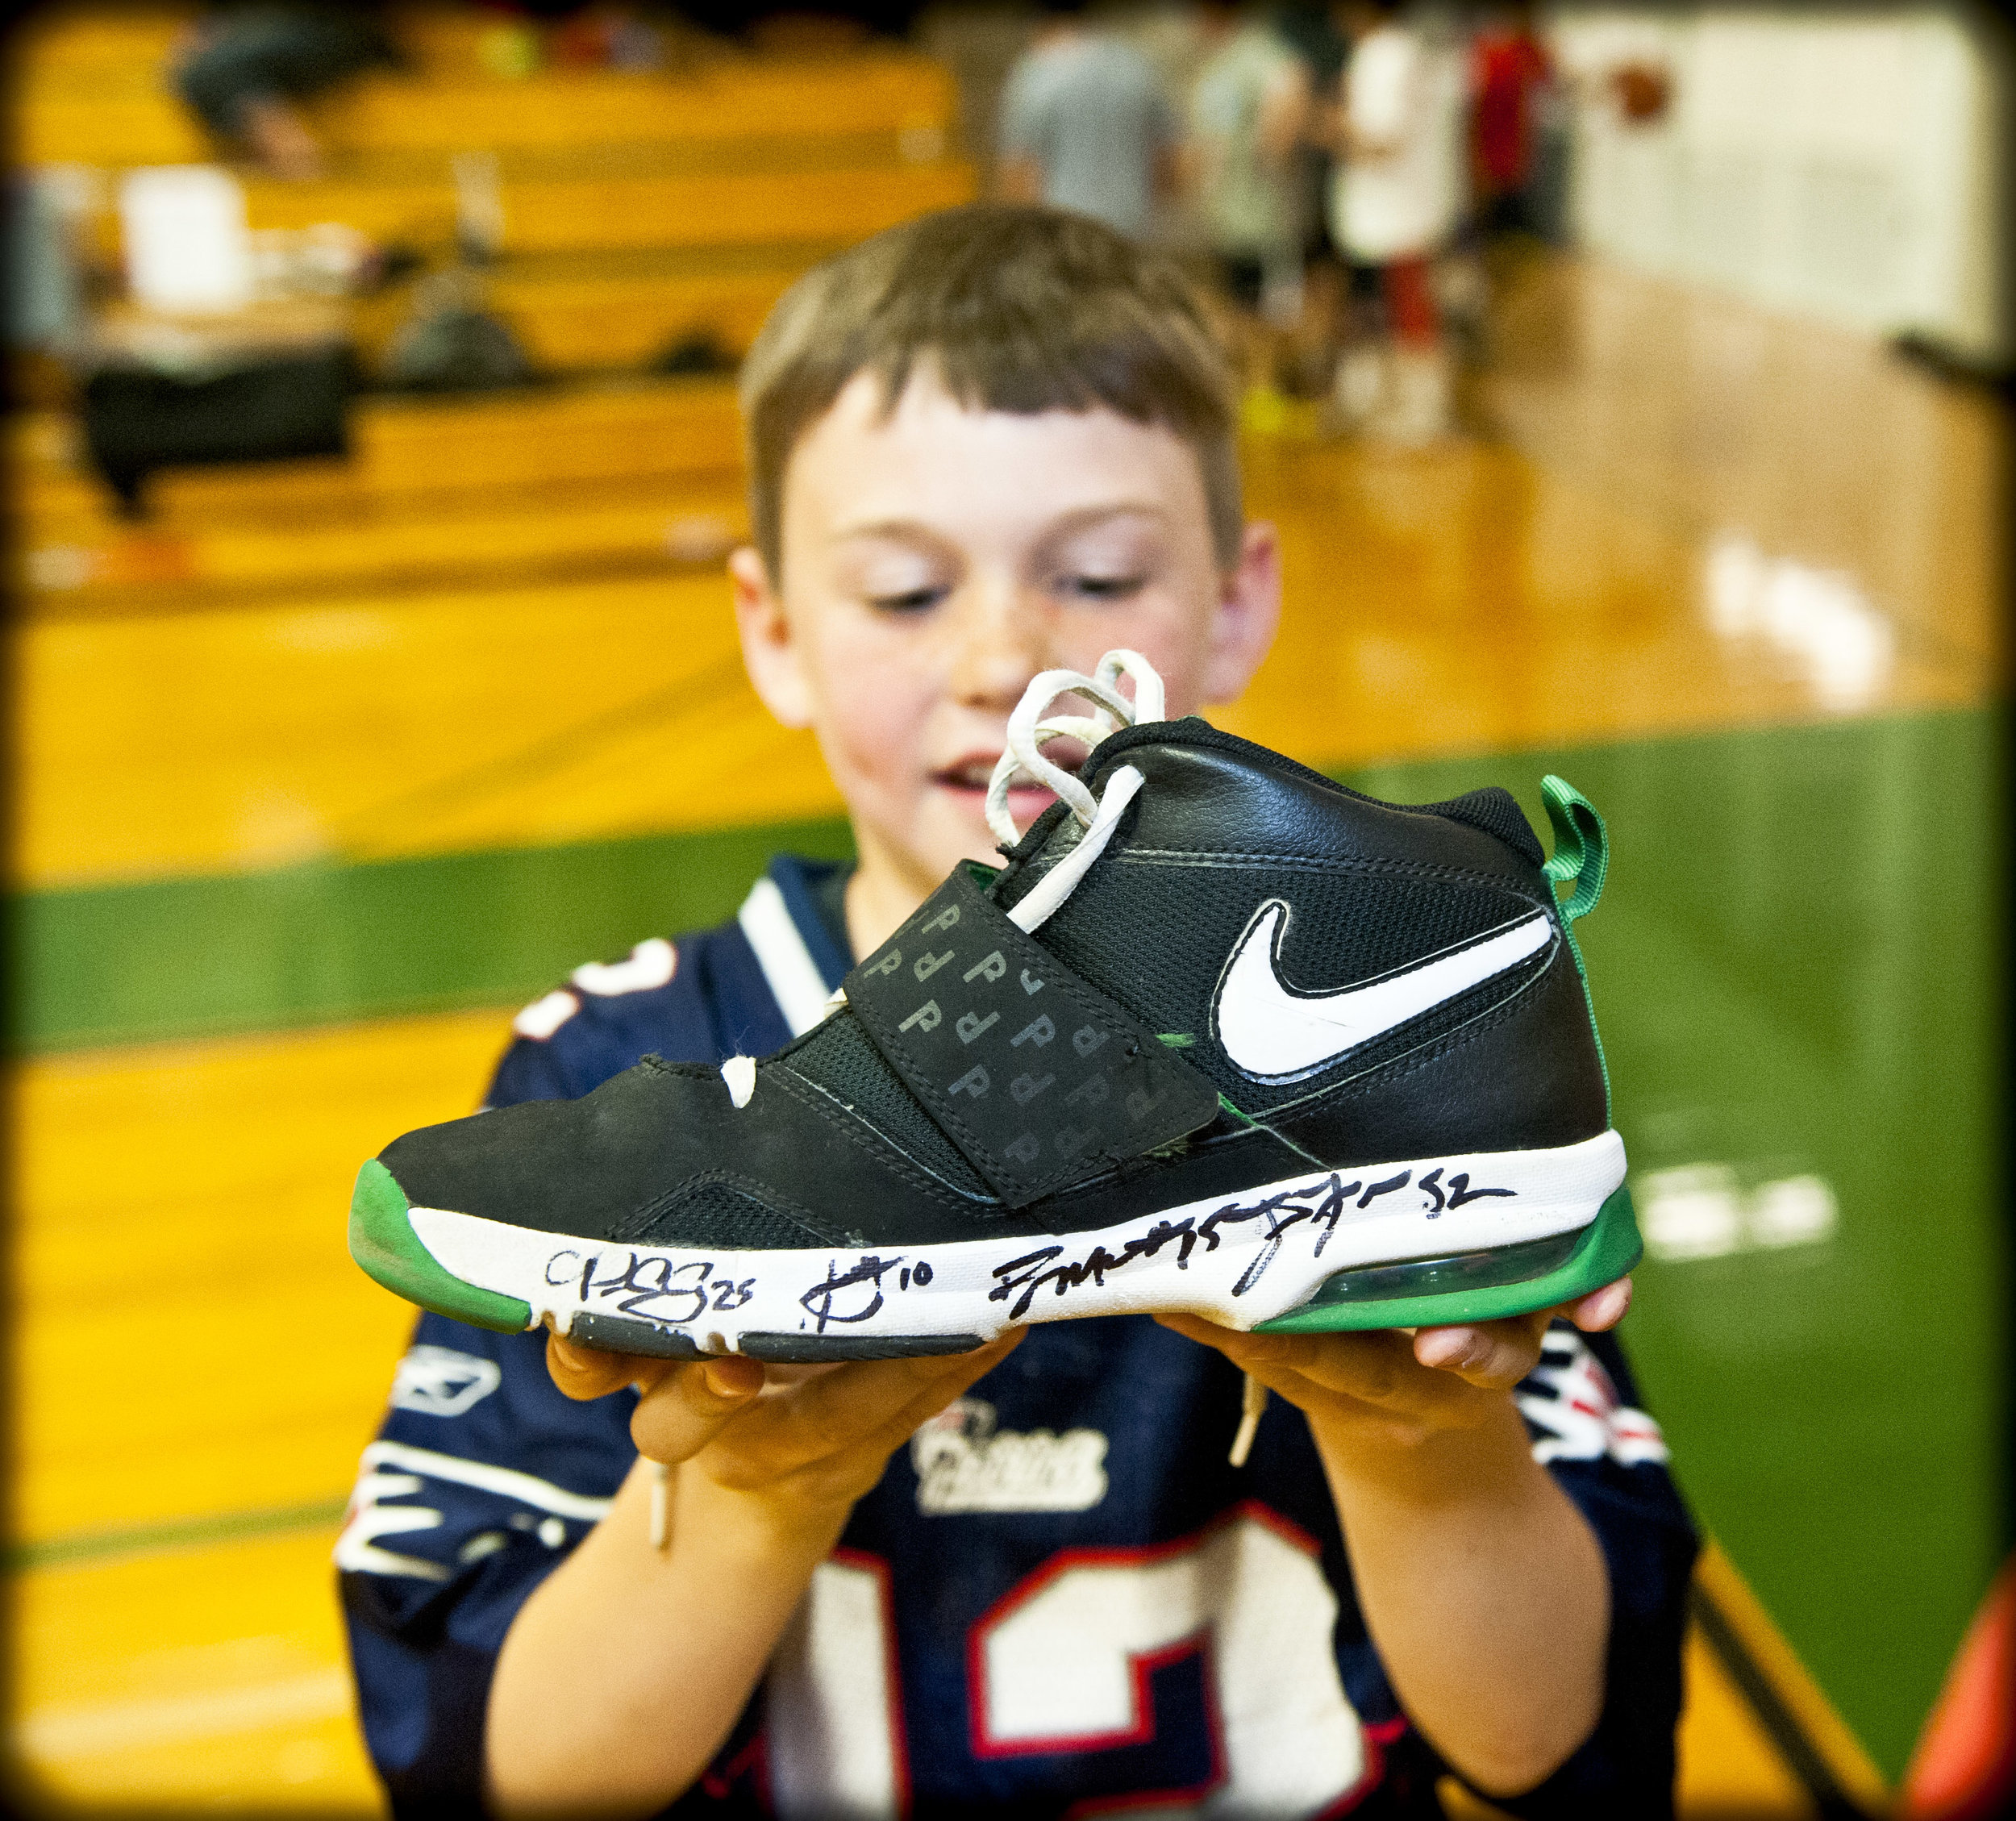 Gronk autographed a sneaker